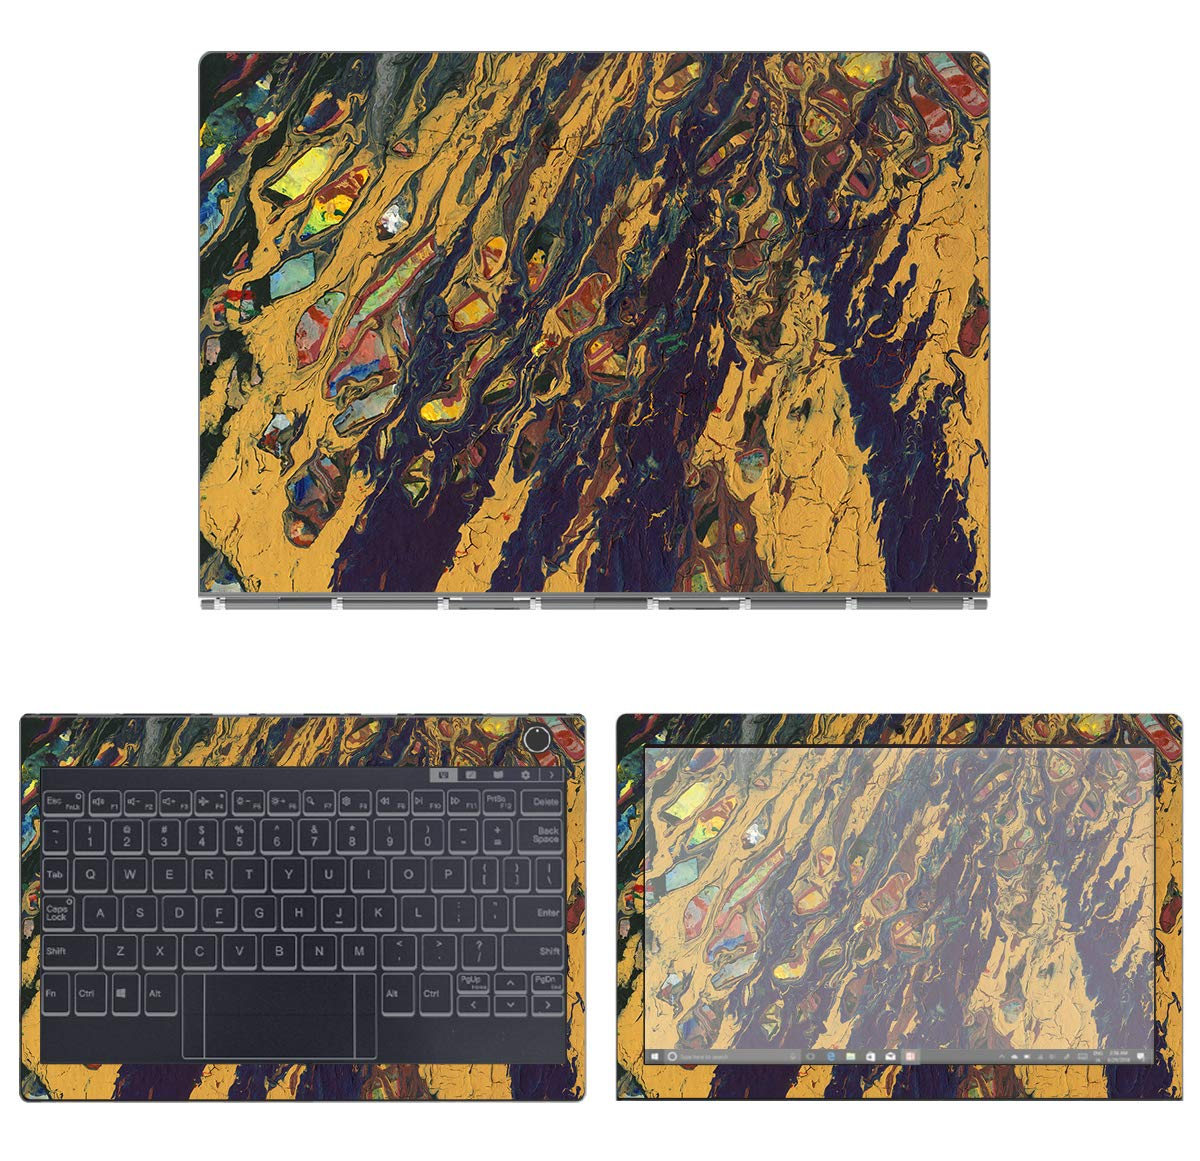 decalrus - Protective Decal Watercolor Skin Sticker for Lenovo Yoga Book C930 (10.8'' Screen) case Cover wrap LEyogaBkC930-231 by decalrus (Image #1)